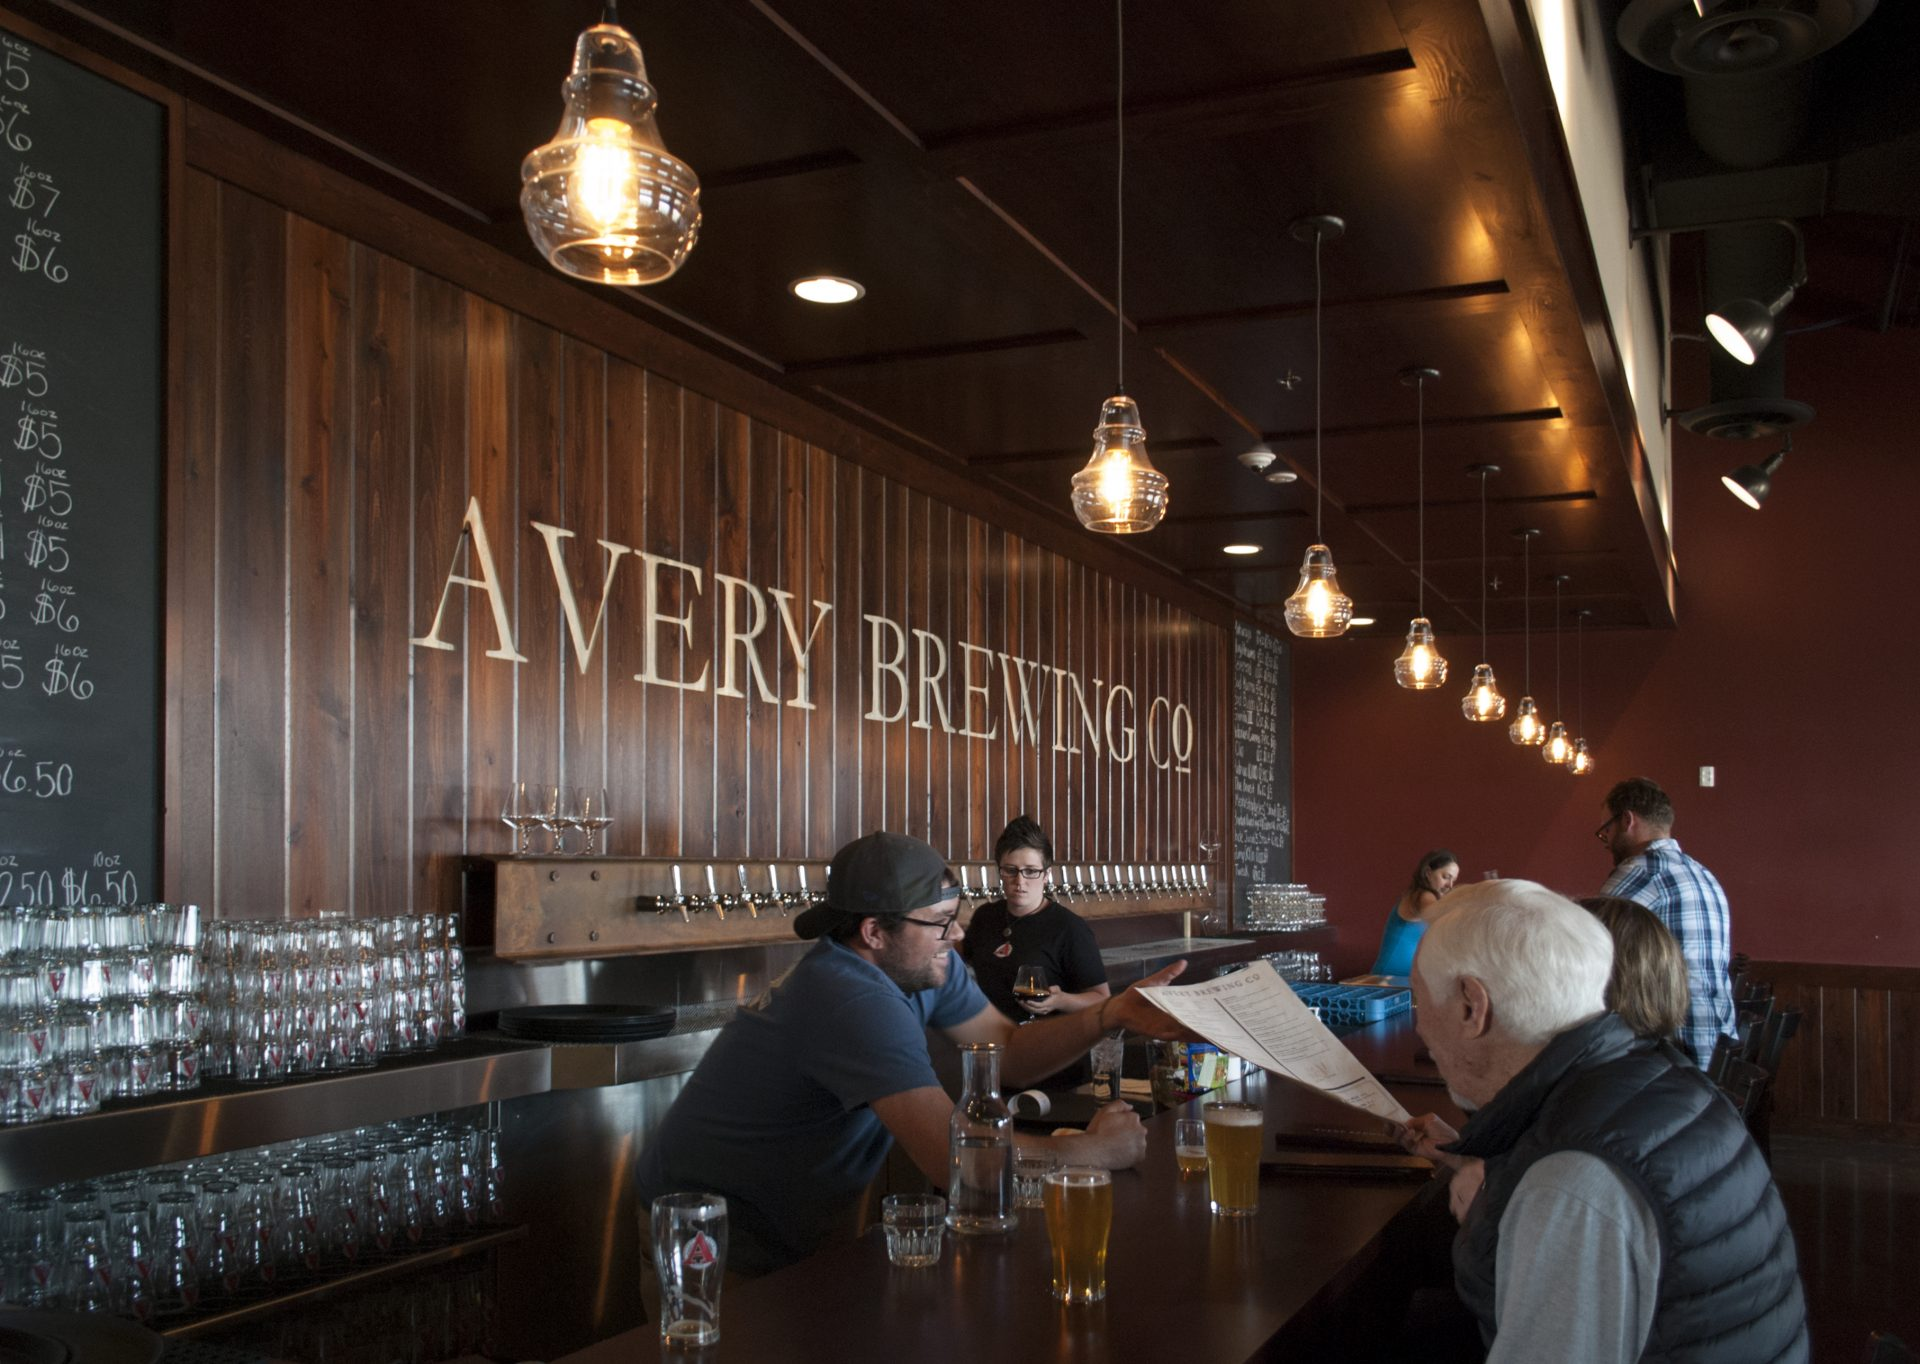 Avery Brewing Company Restaurant